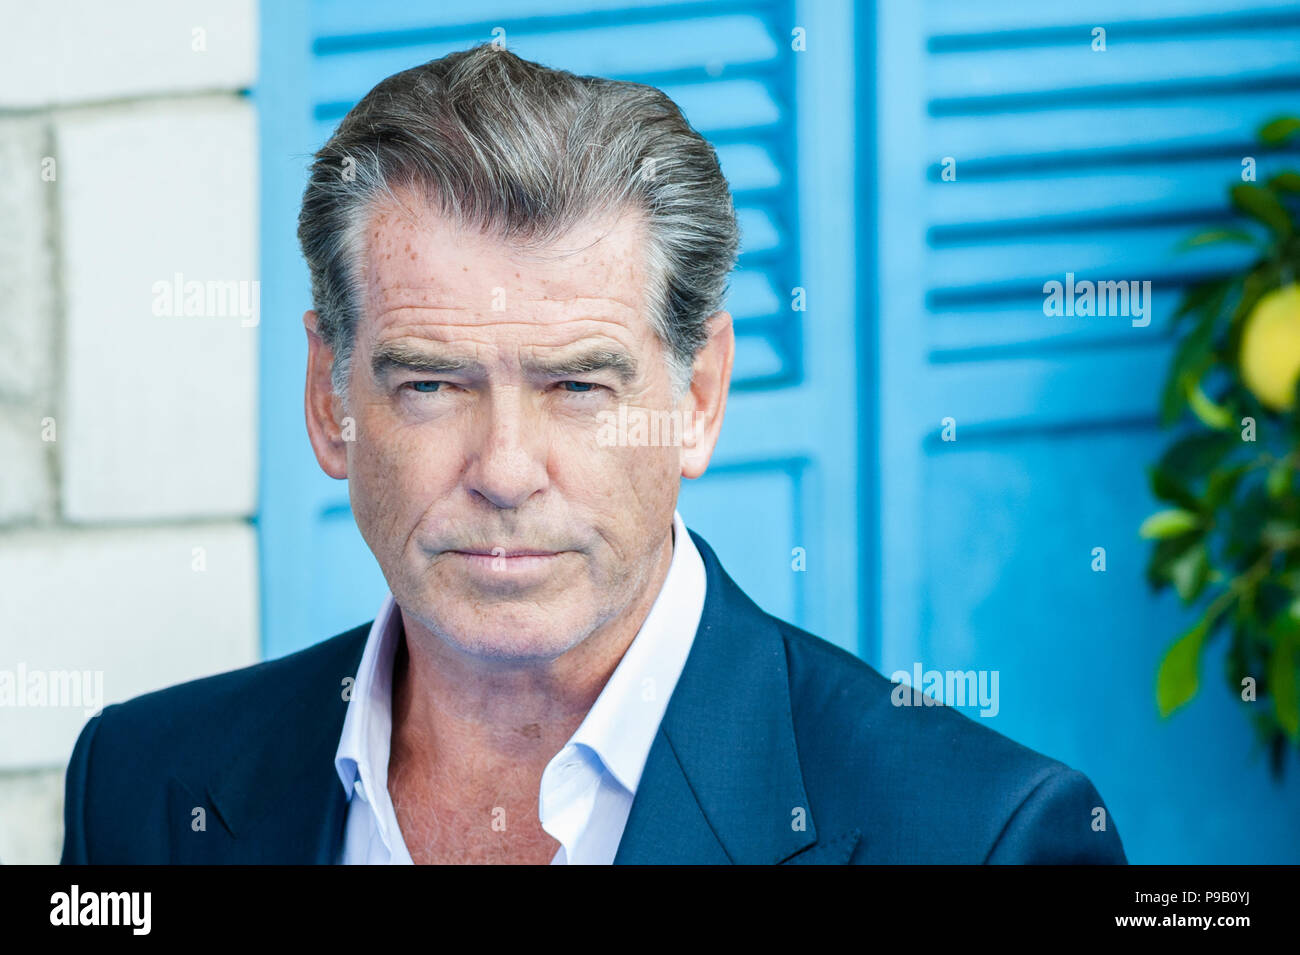 Keely Shaye Smith Pierce Brosnan Stock Photos & Keely Shaye Smith ...